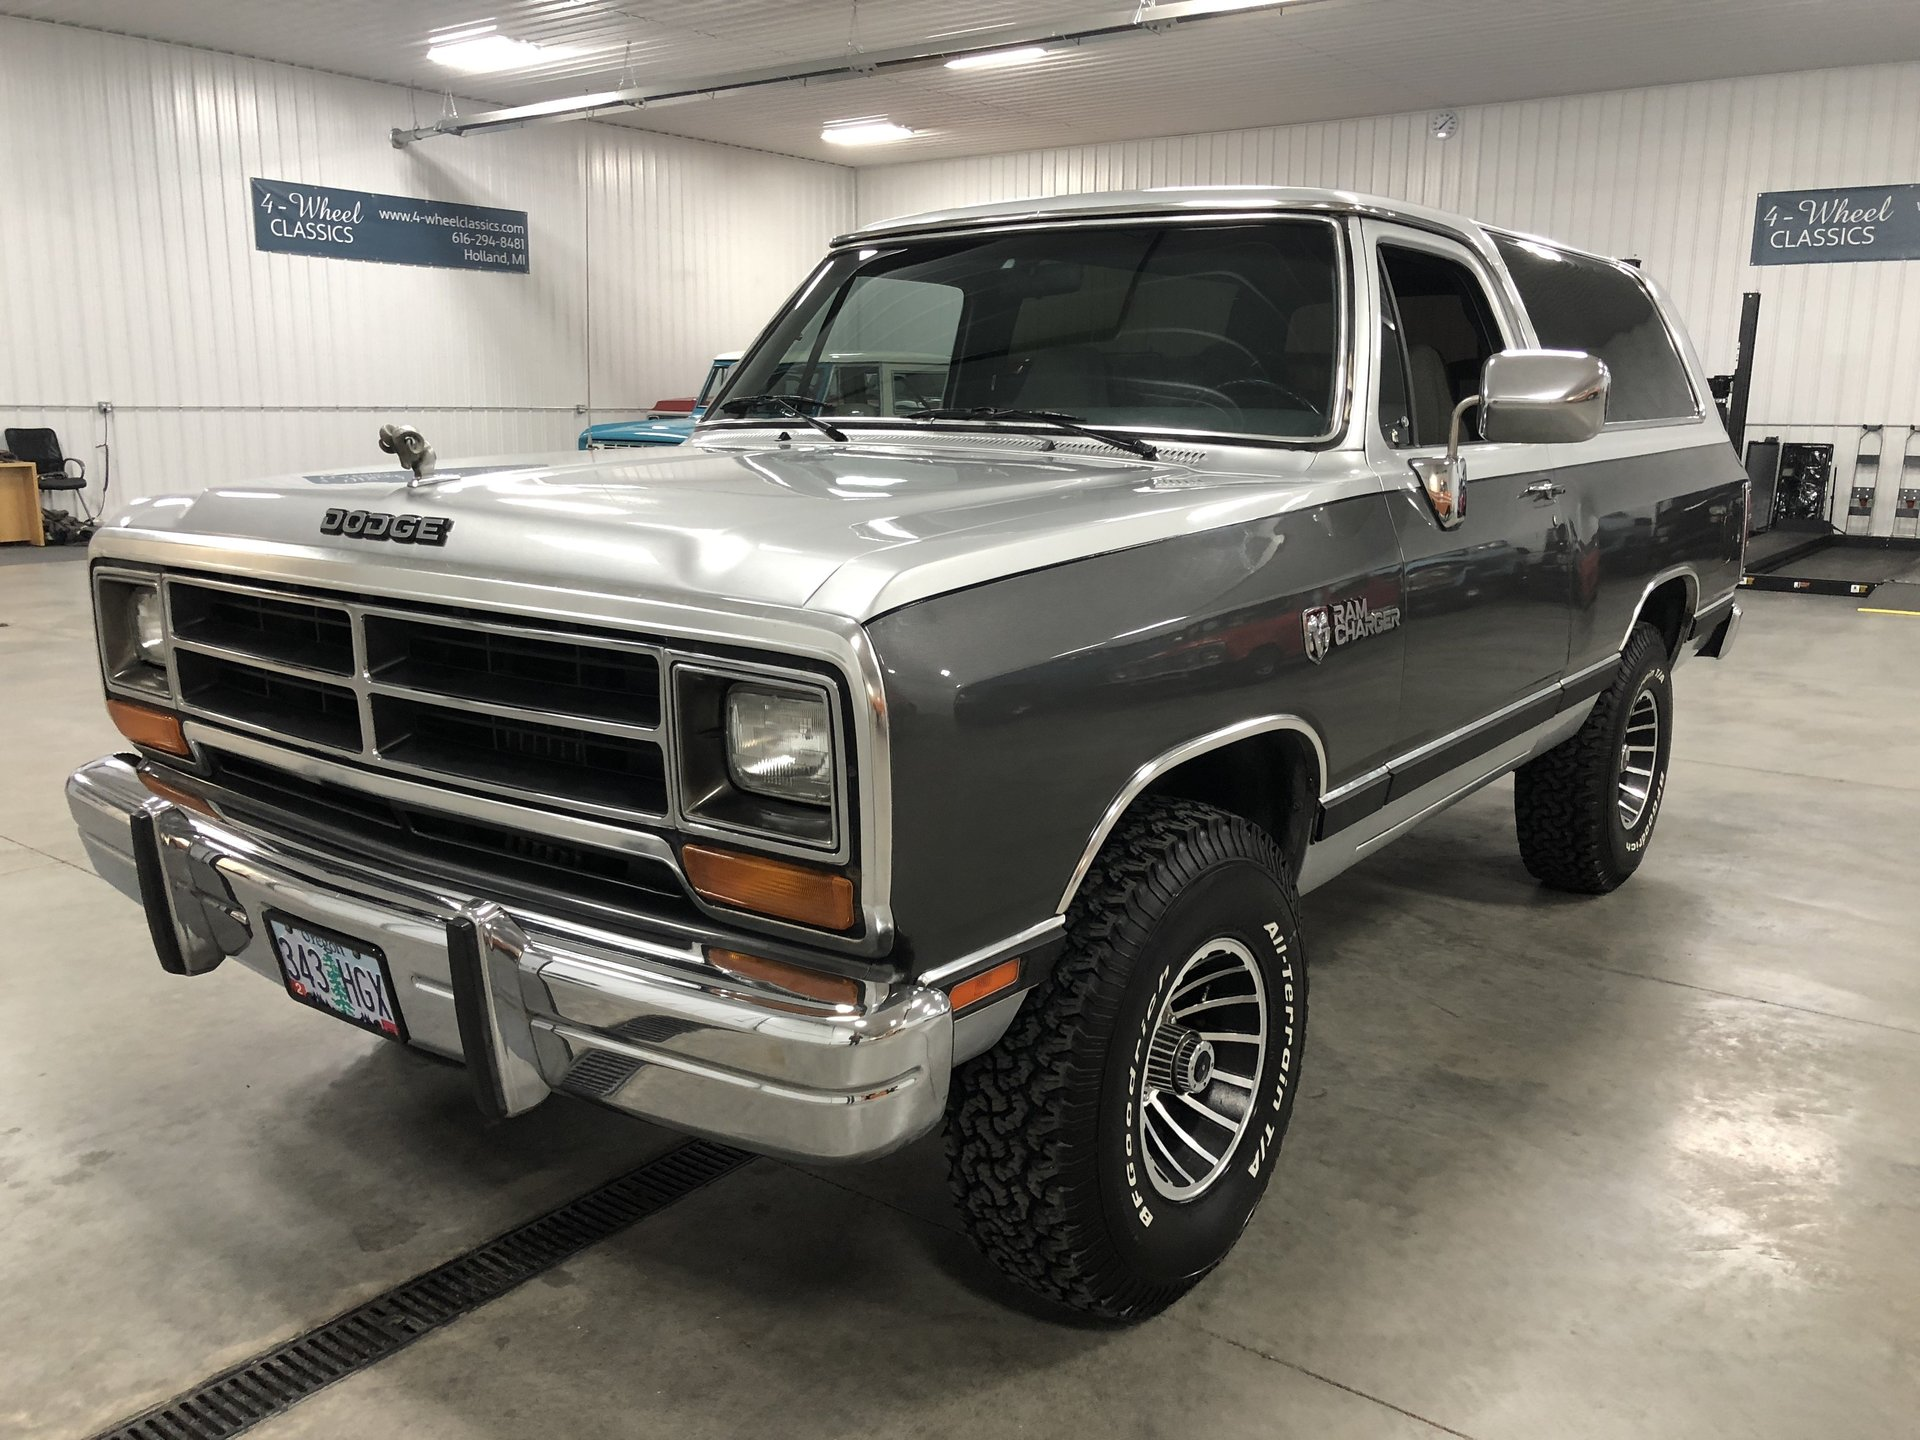 52762a86b034 hd 1990 dodge ramcharger